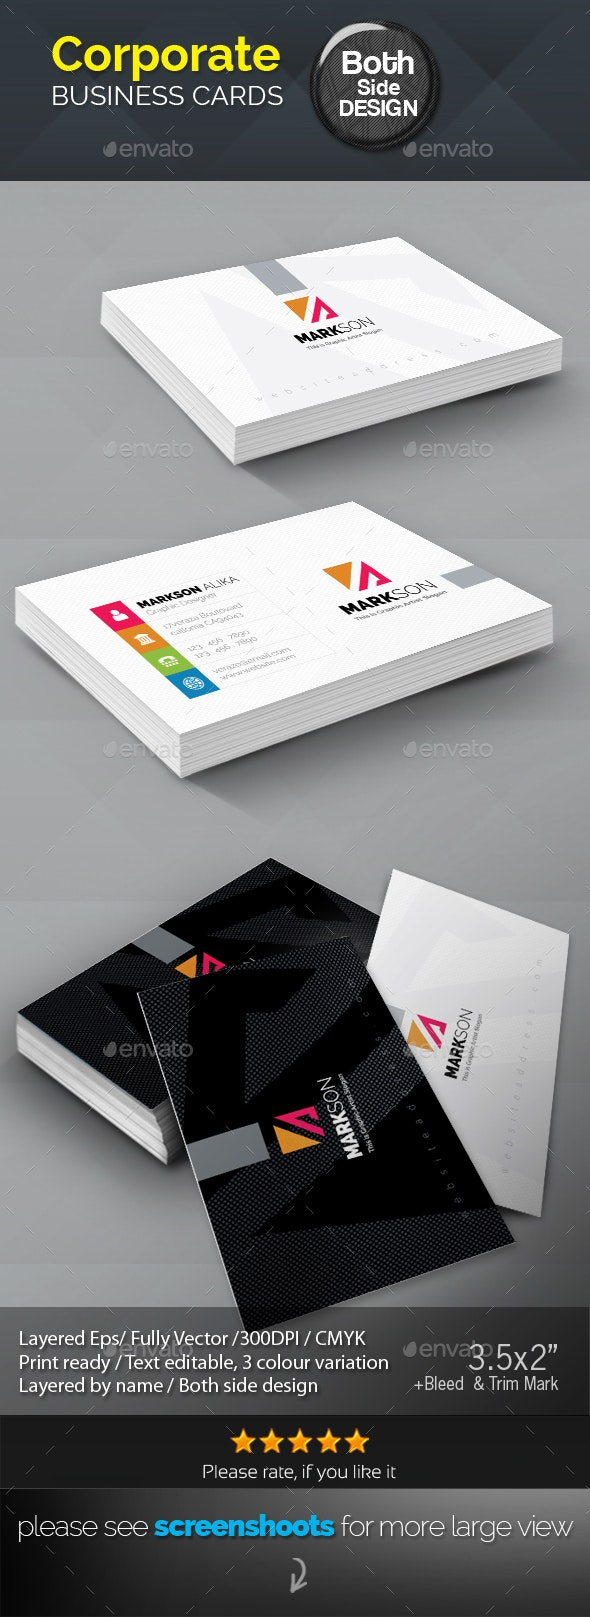 Markson_Corporate Business Card - Corporate Business Cards